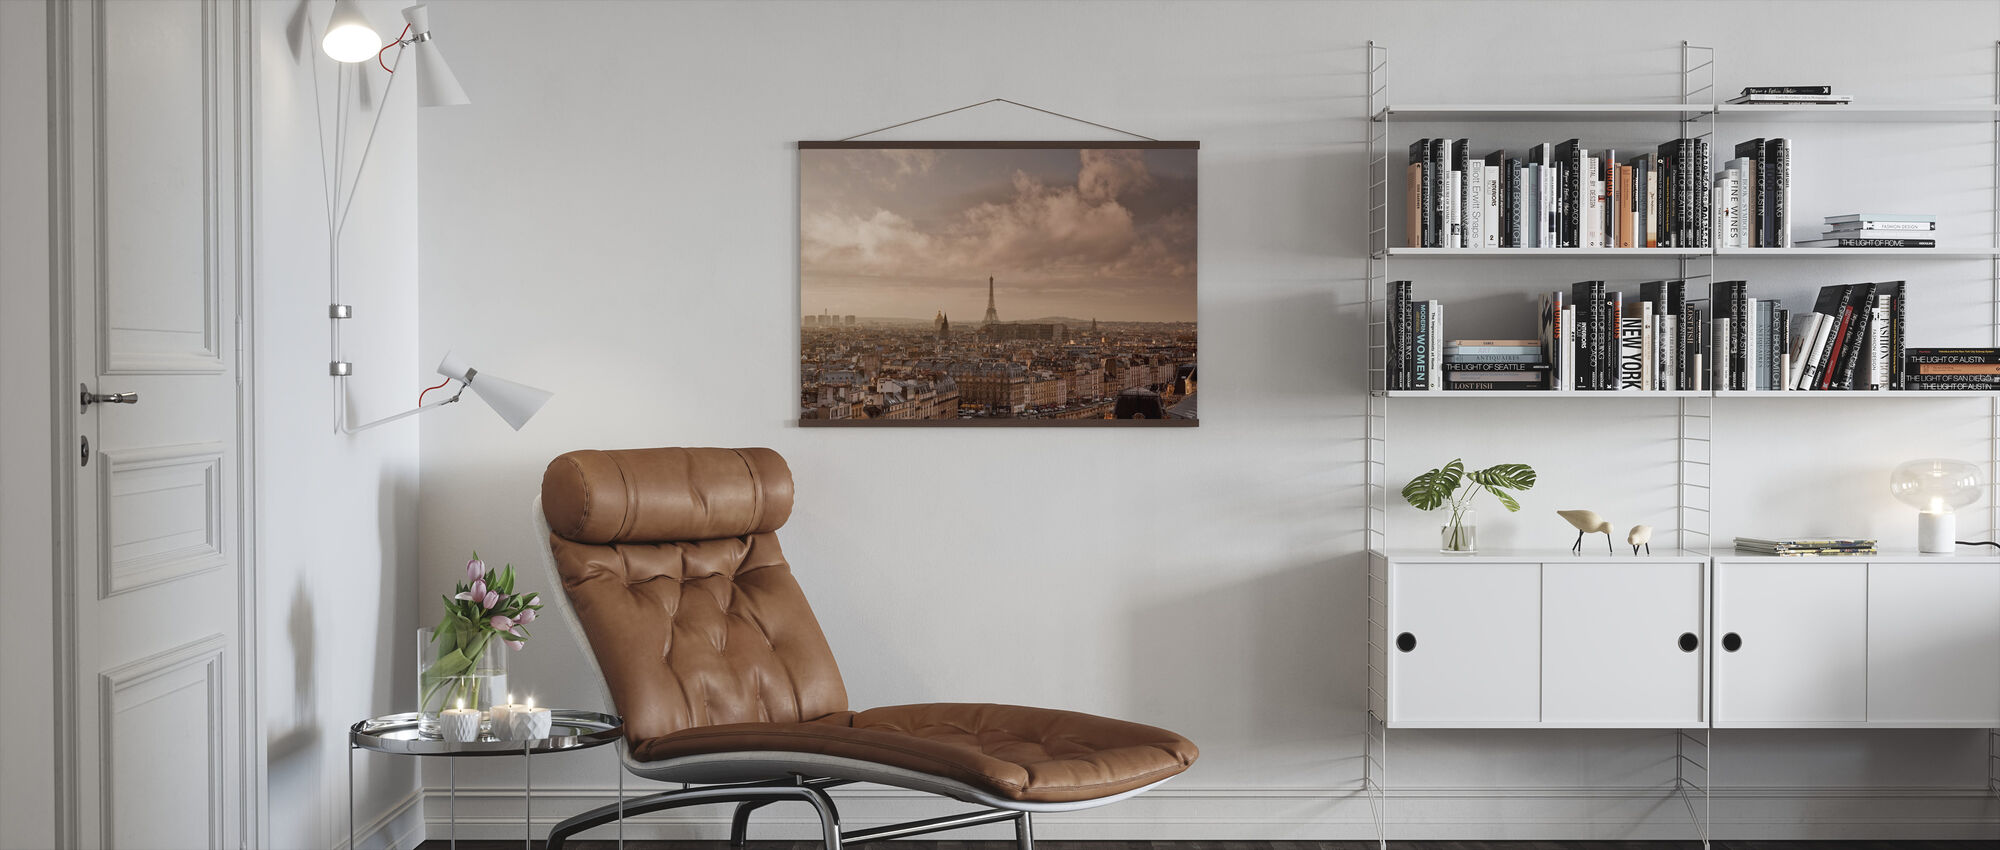 Soft Clouds Sweeping by Paris - Poster - Living Room